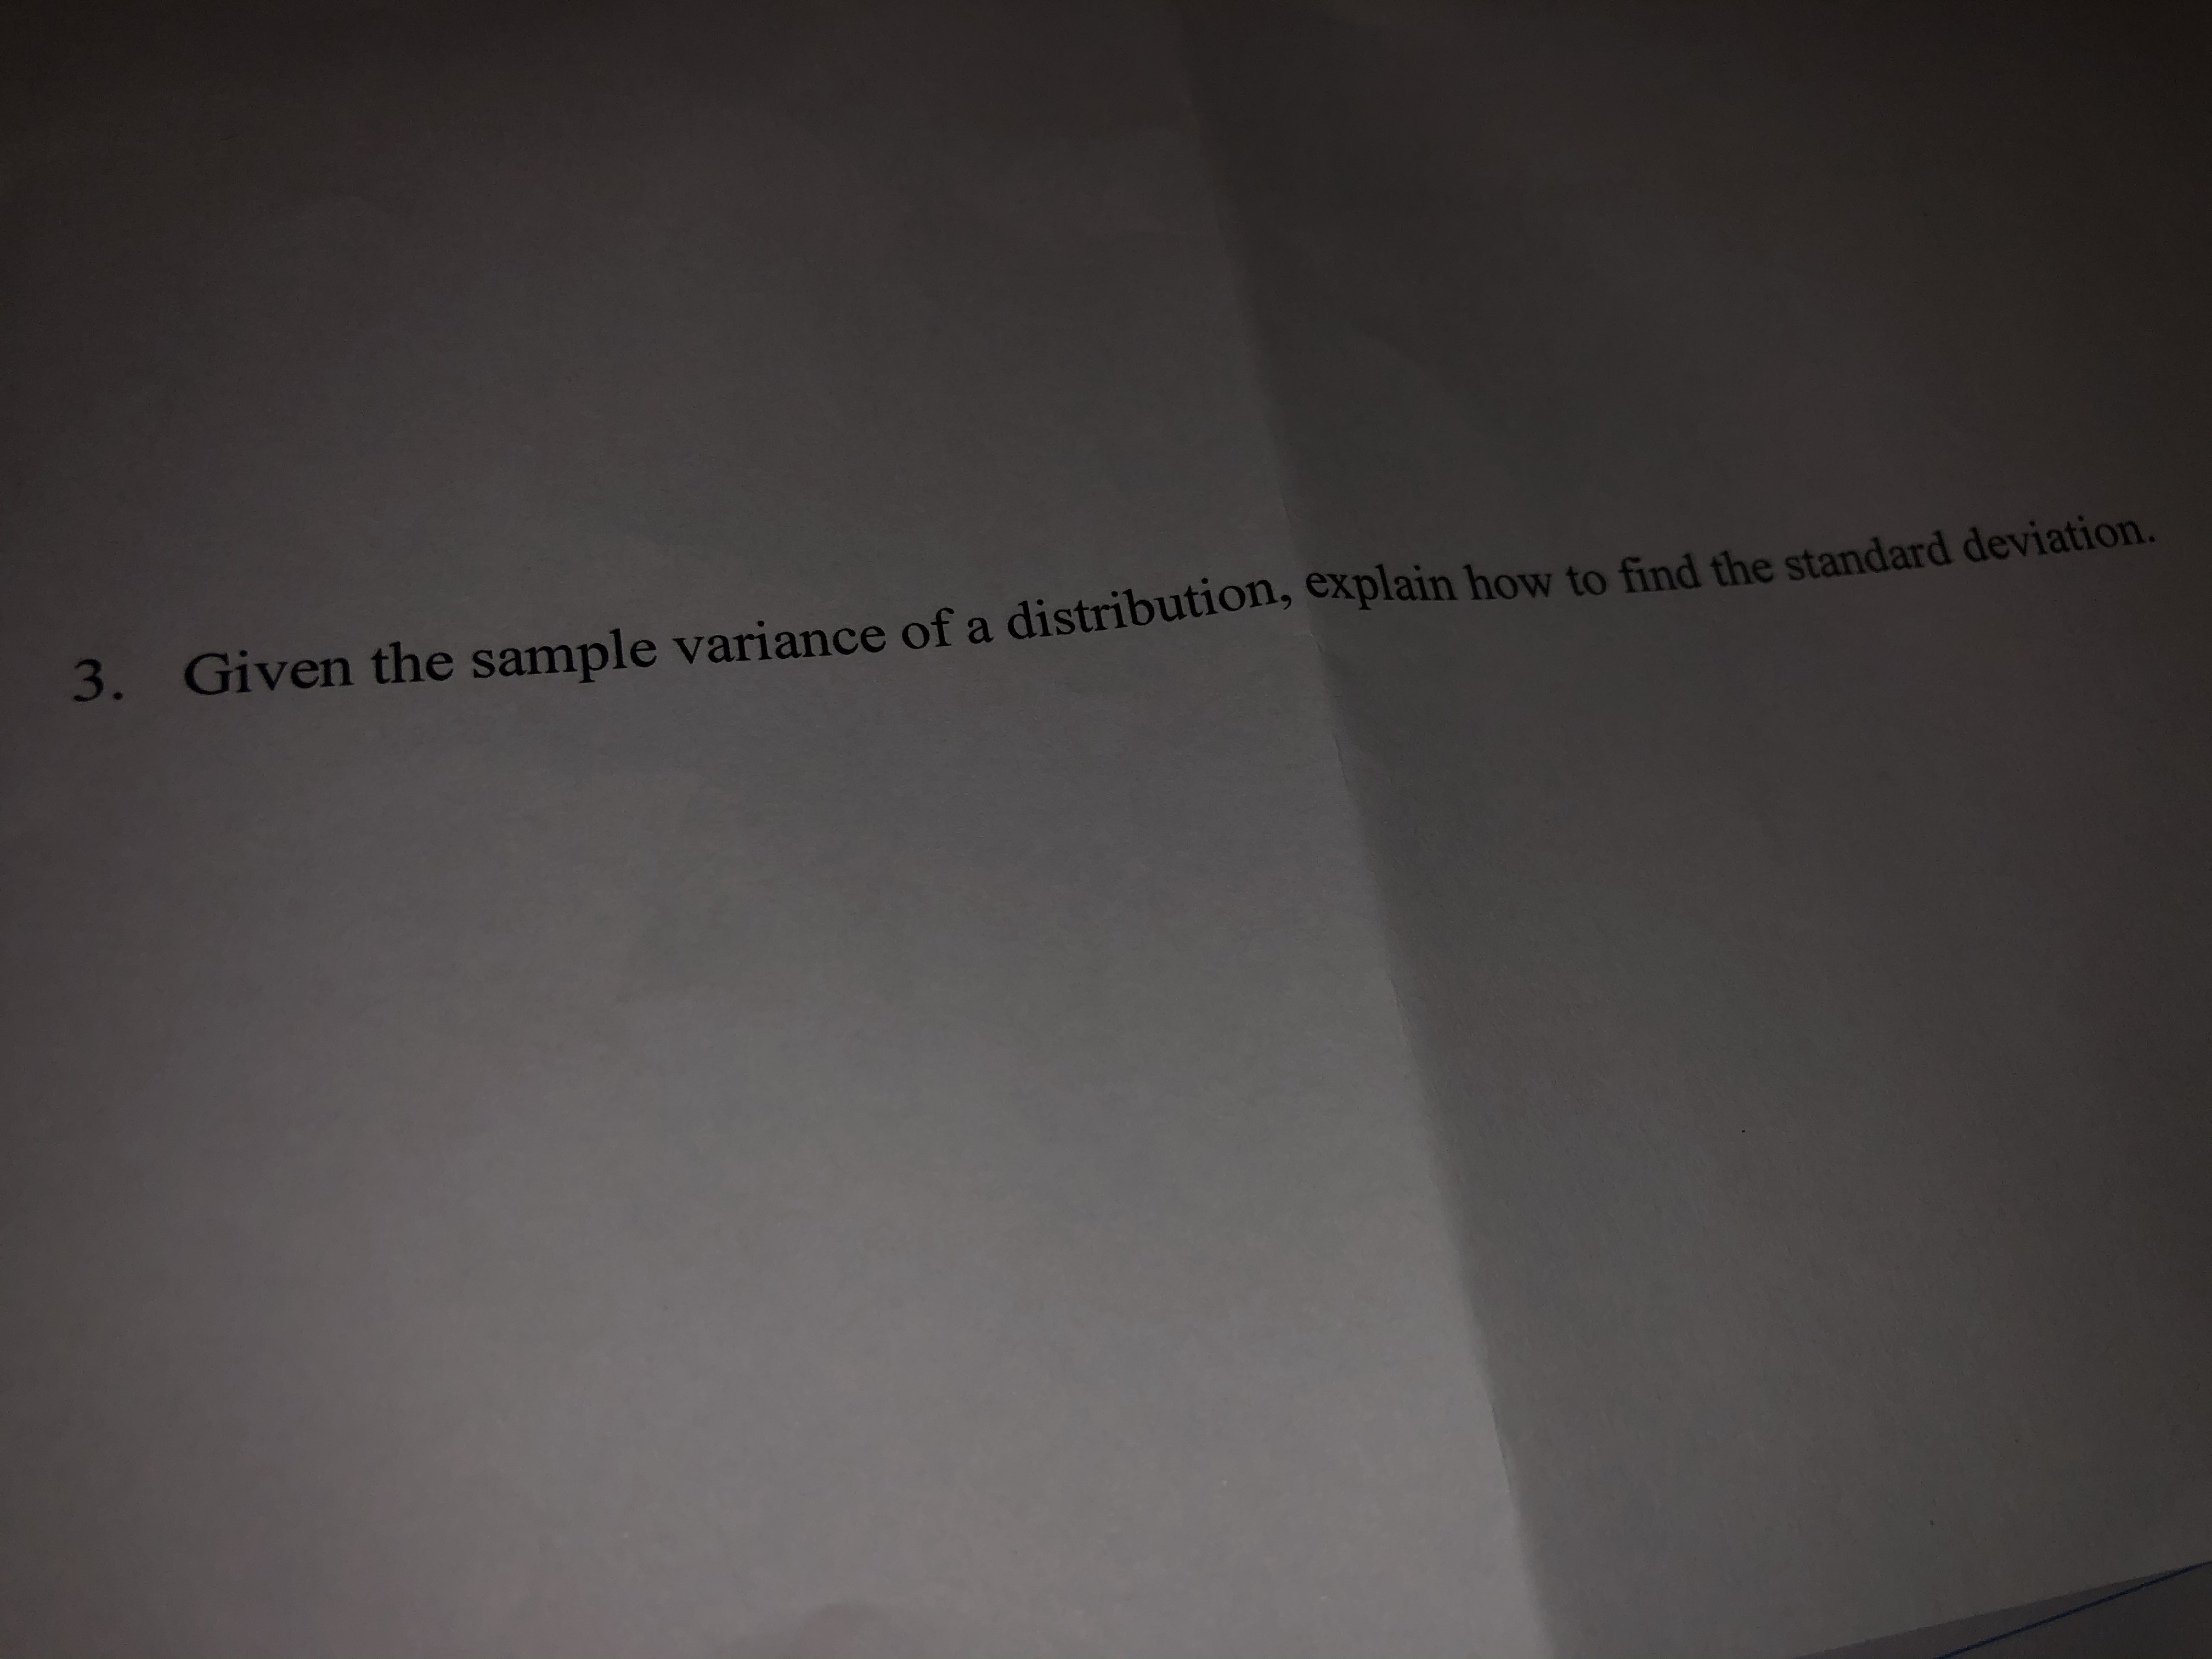 Answered 3 Given The Sample Variance Of A